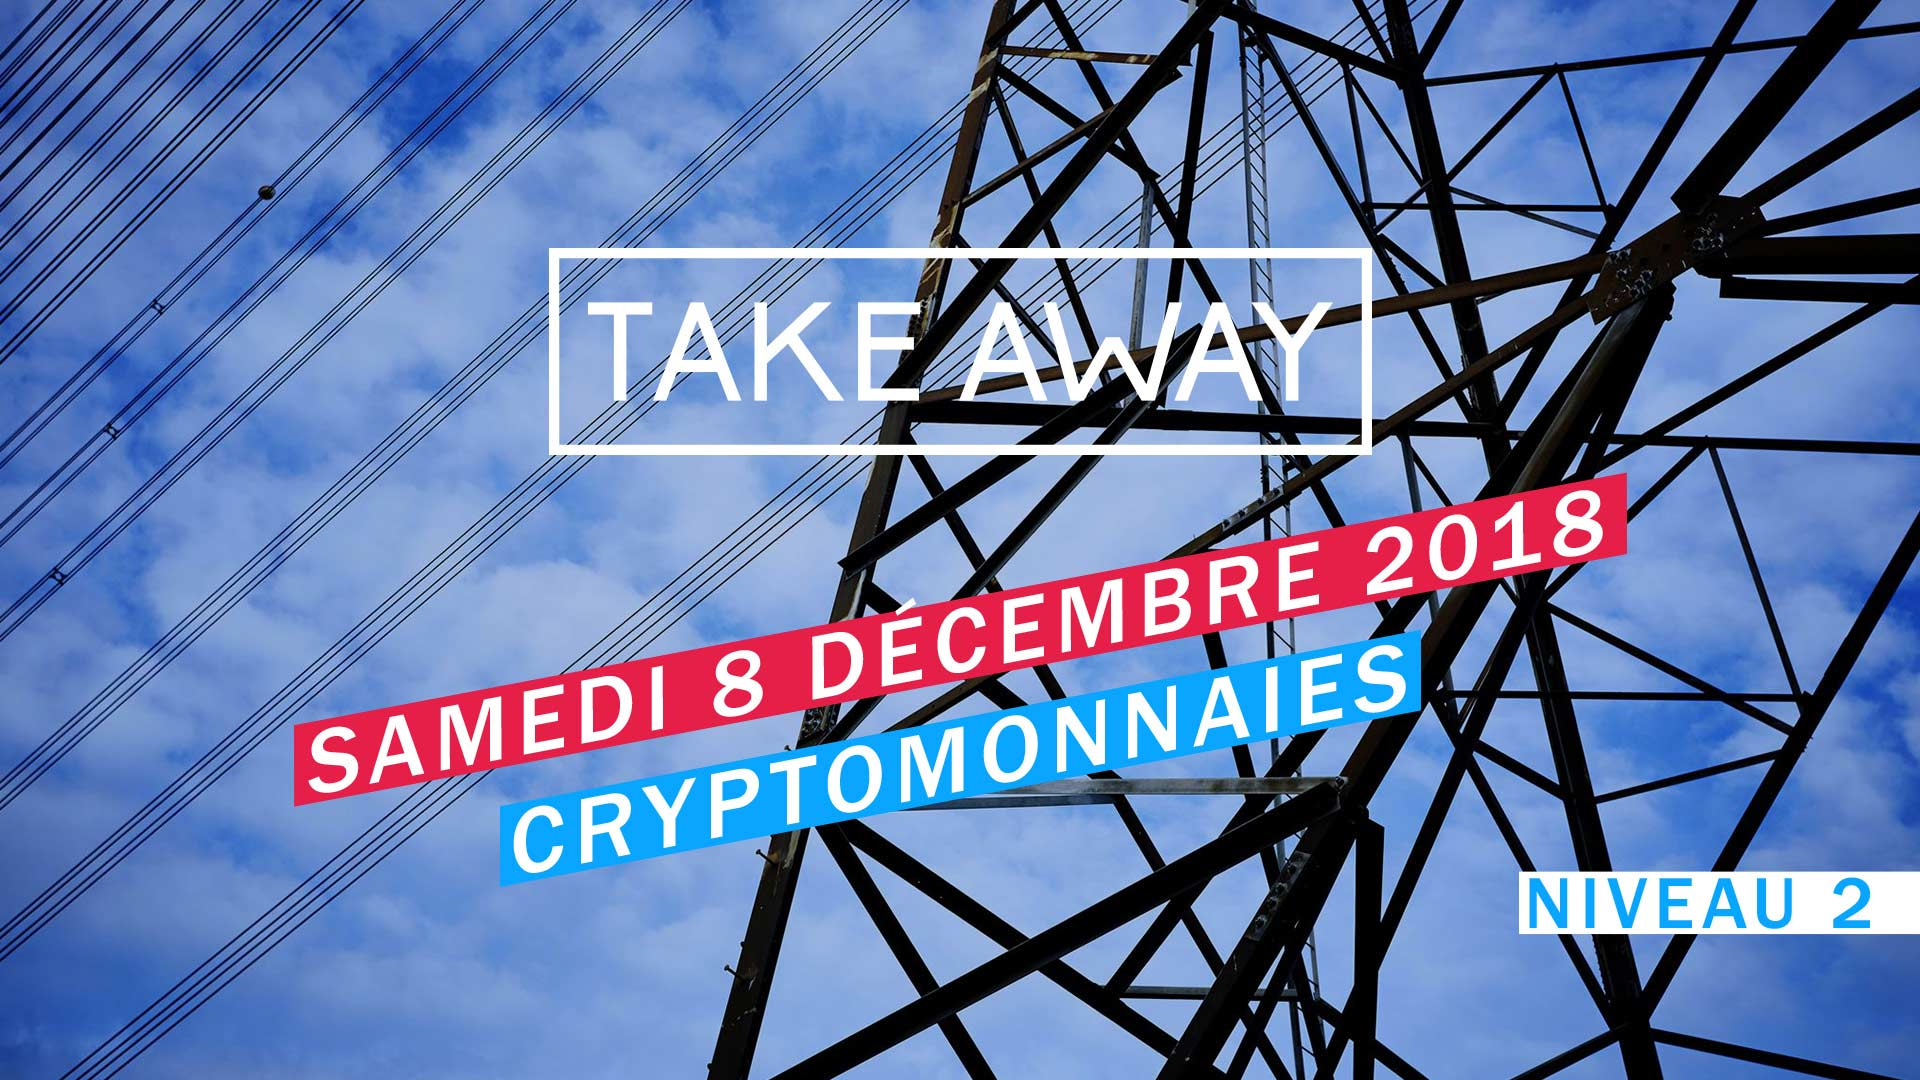 Take_Away_cryptomonnaies_niveau_2